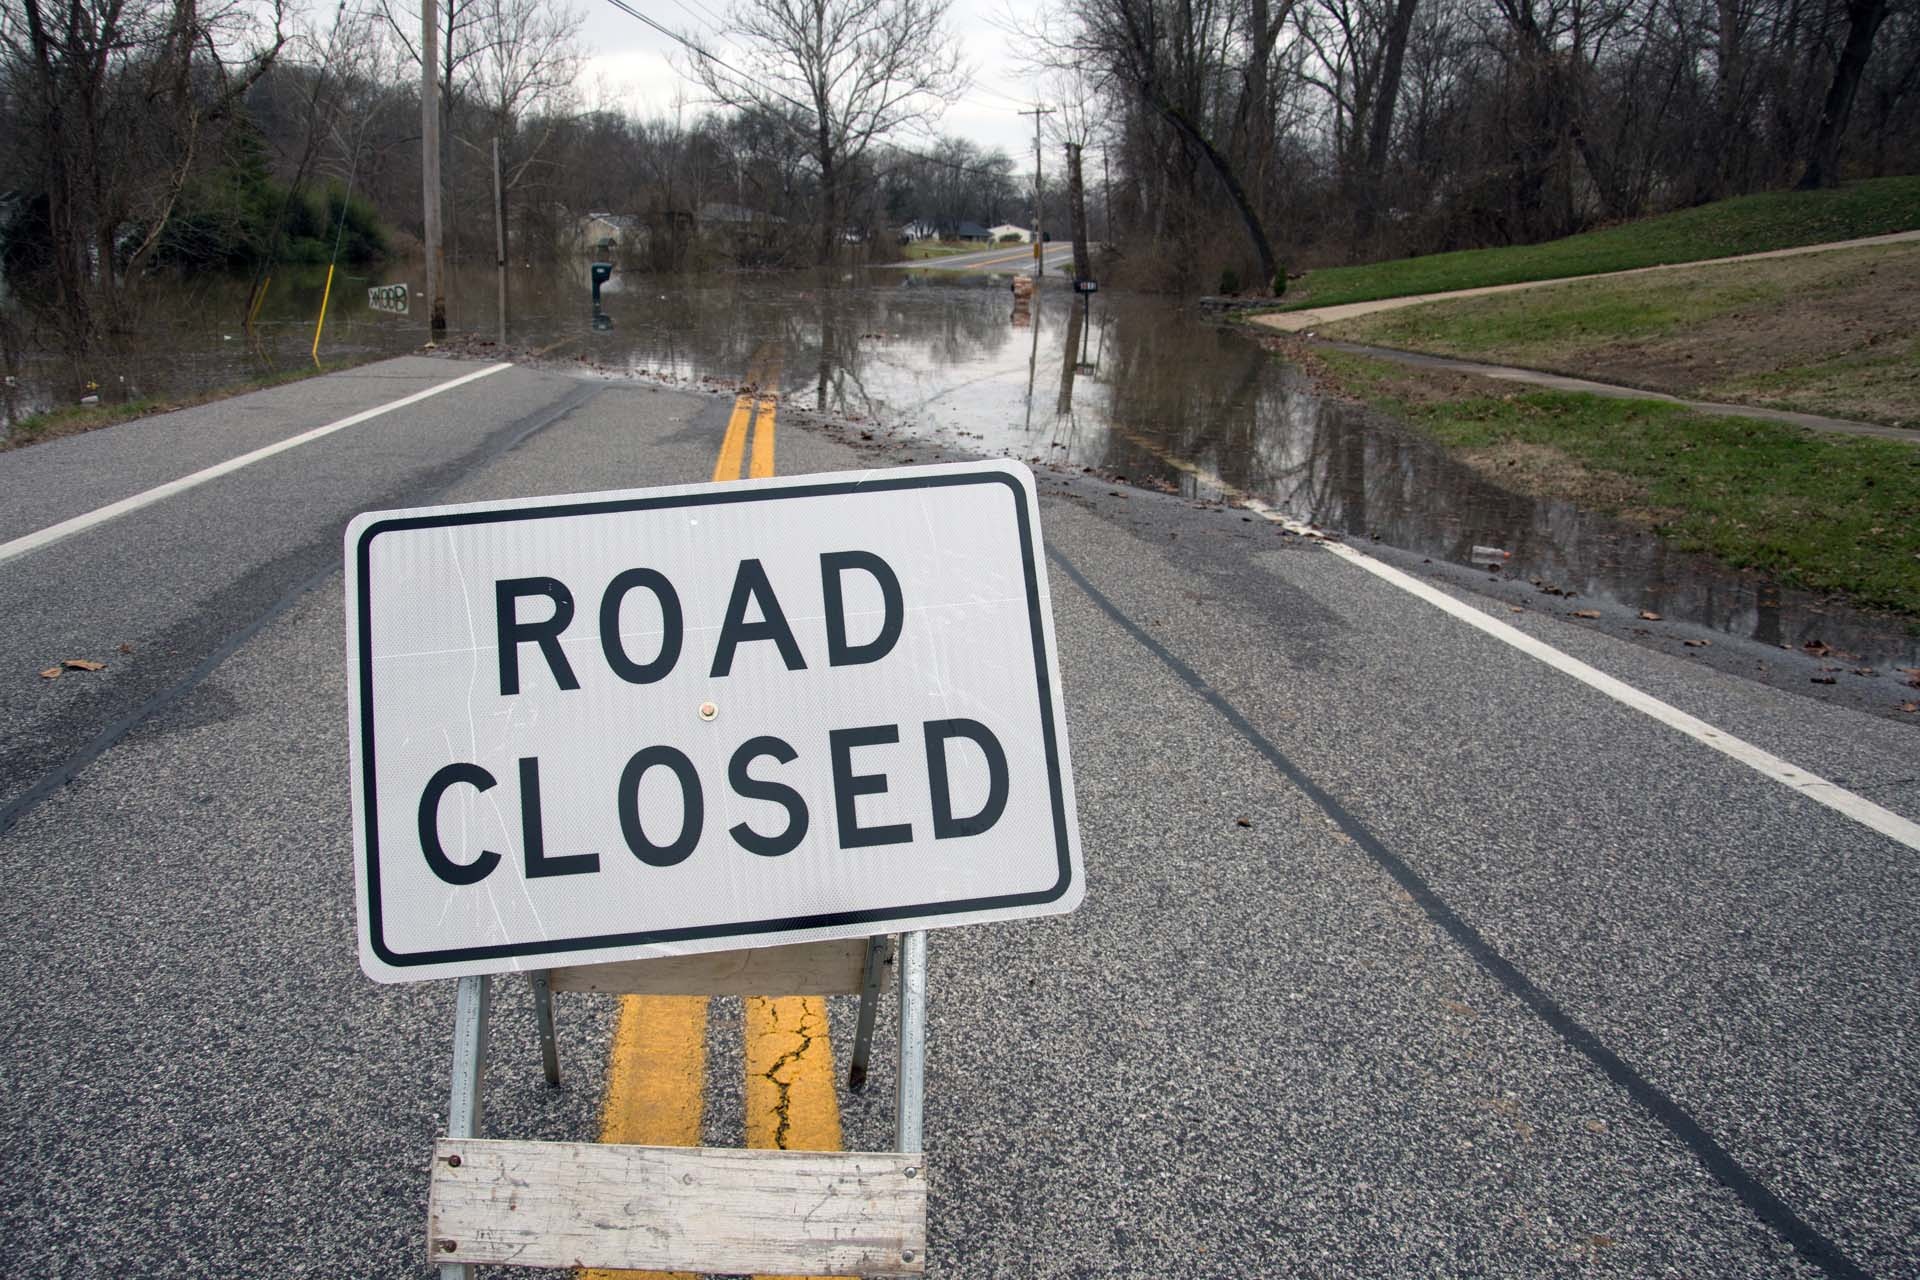 A road closed sign in the middle of a roadway in Oakville near St. Louis, Missouri